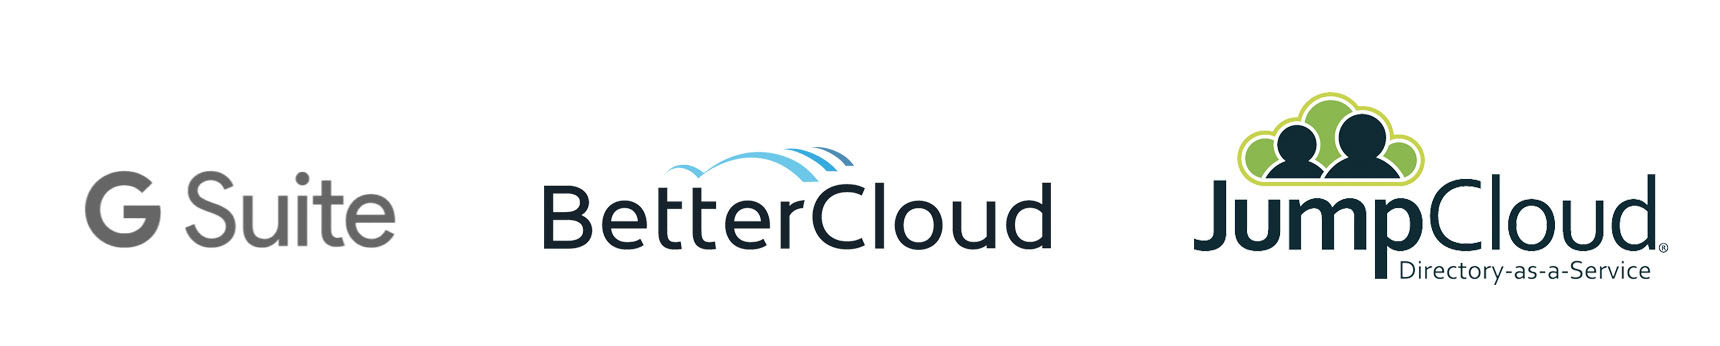 g-suite-bettercloud-jumpcloud